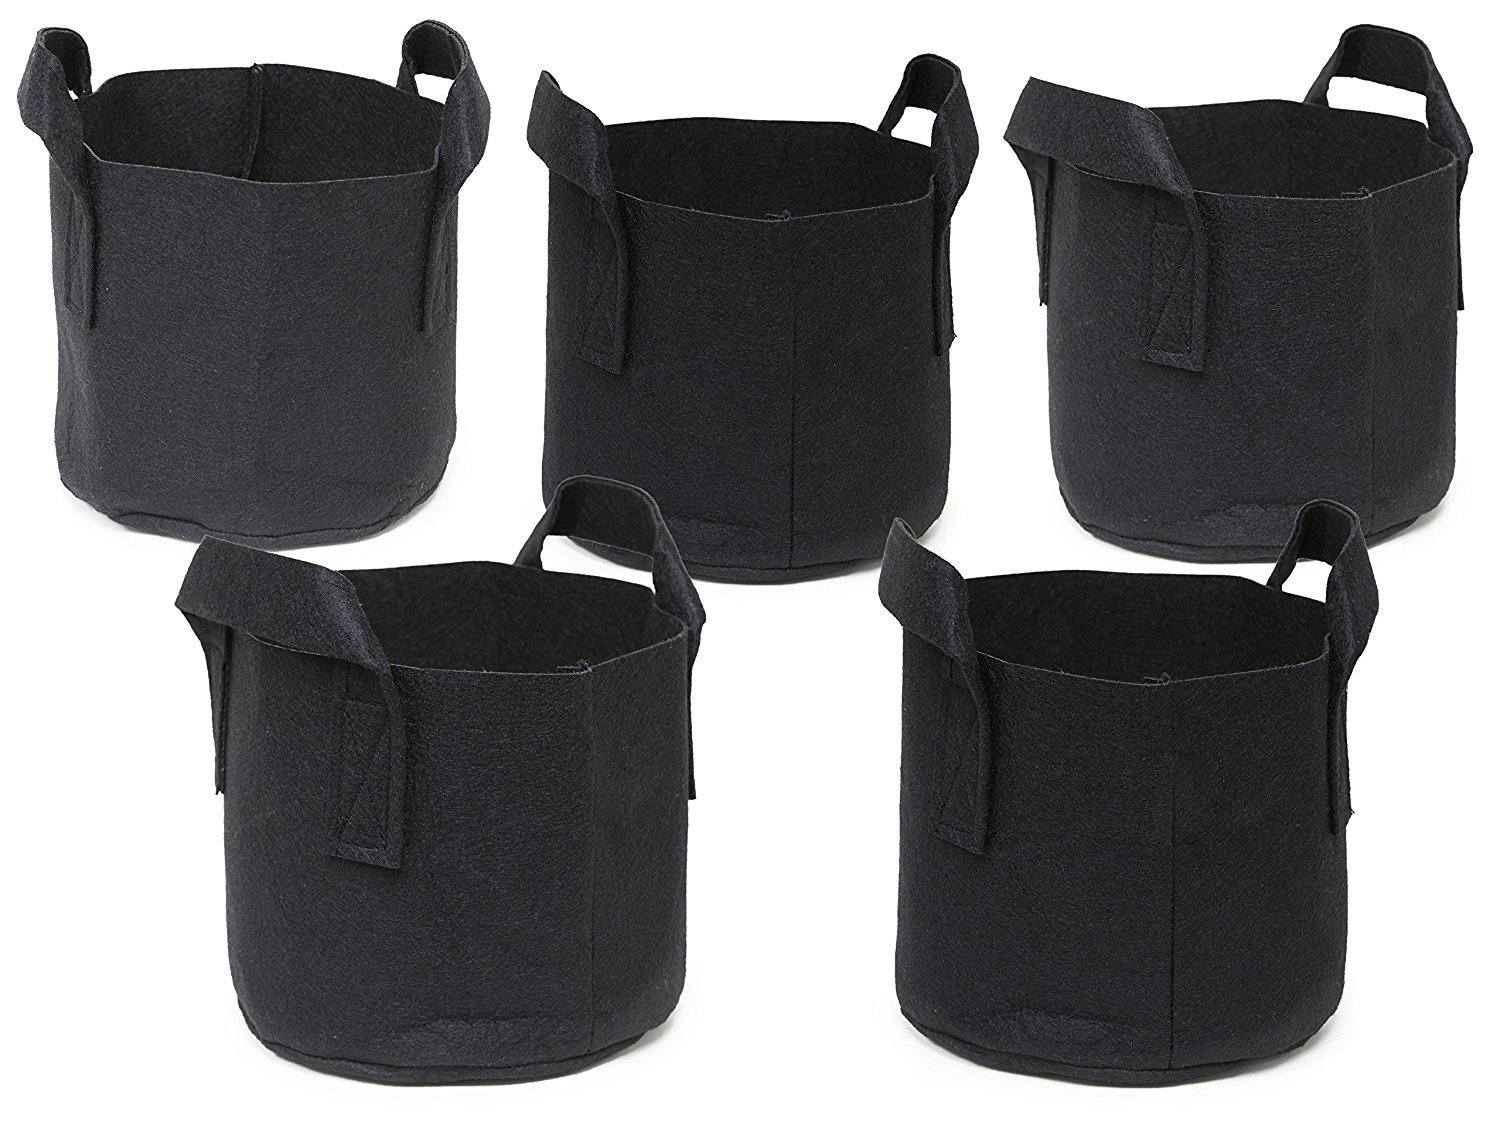 5-Pack Grow Bags /Nonvoven Premium Quality Raised Bed Fabric Fabric Pots w Handles (Black) (1 gallon) by Maker2